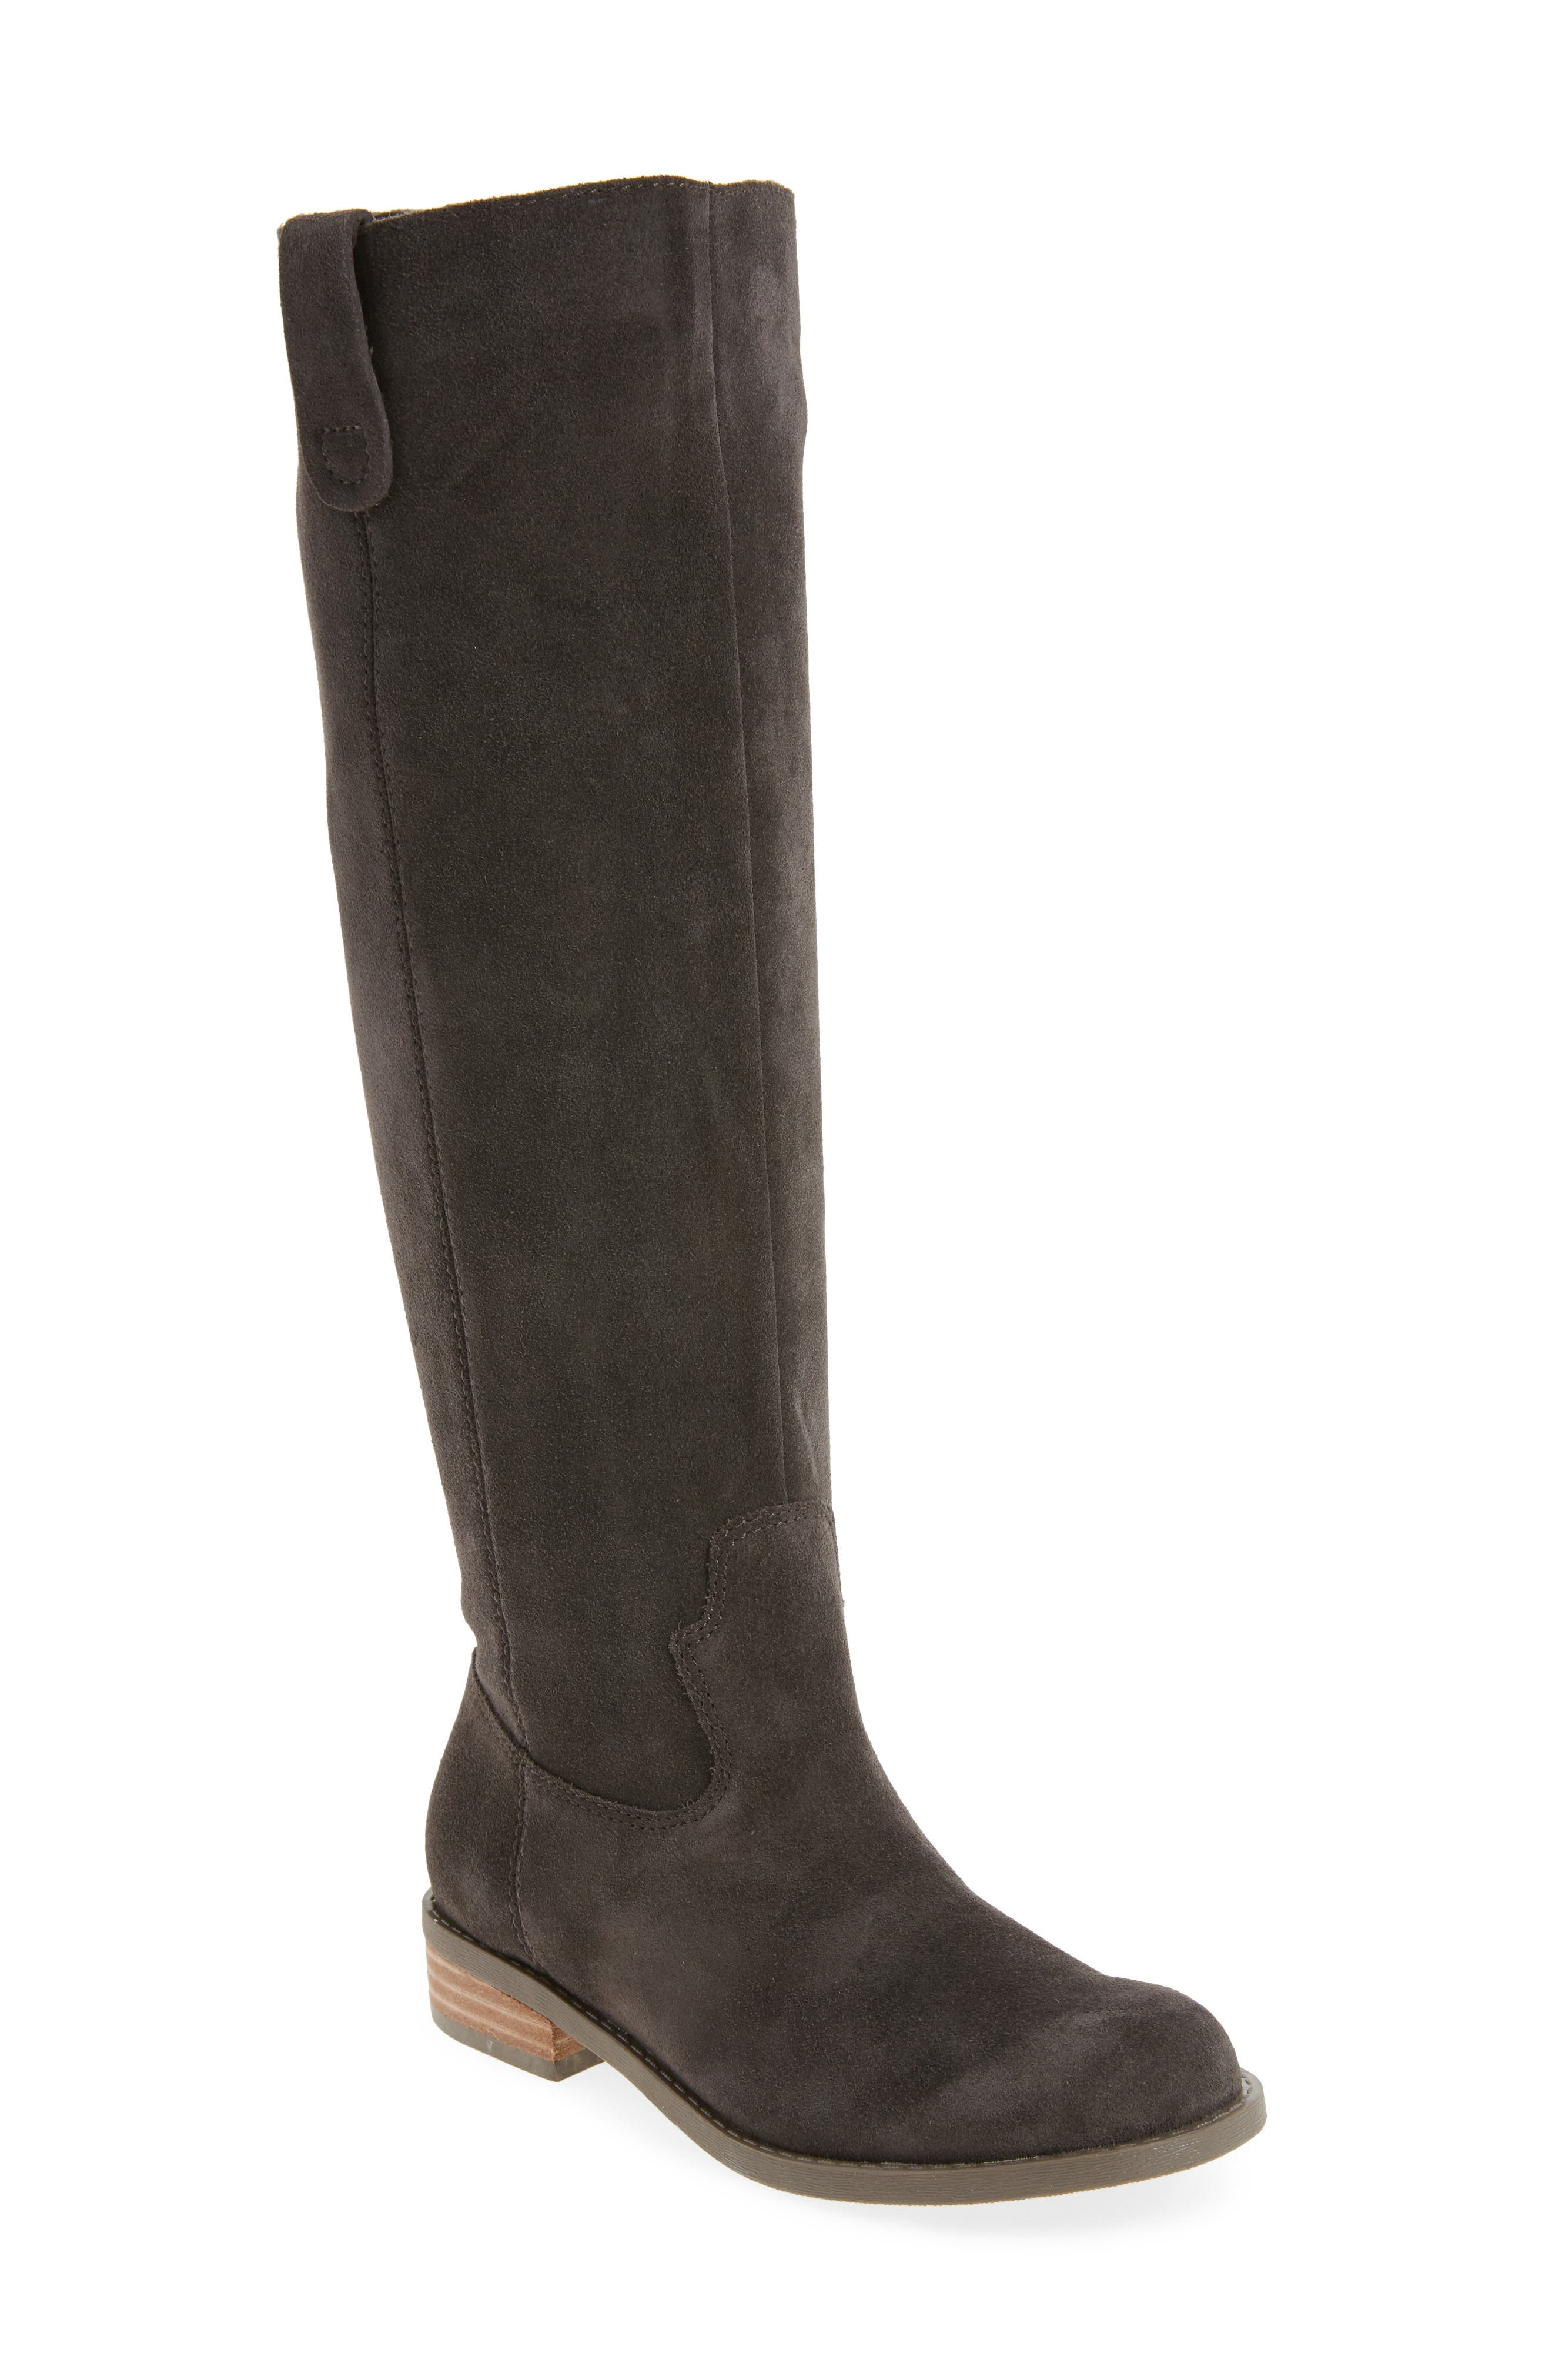 Hawn Knee High Boot,                         Main,                         color, 021